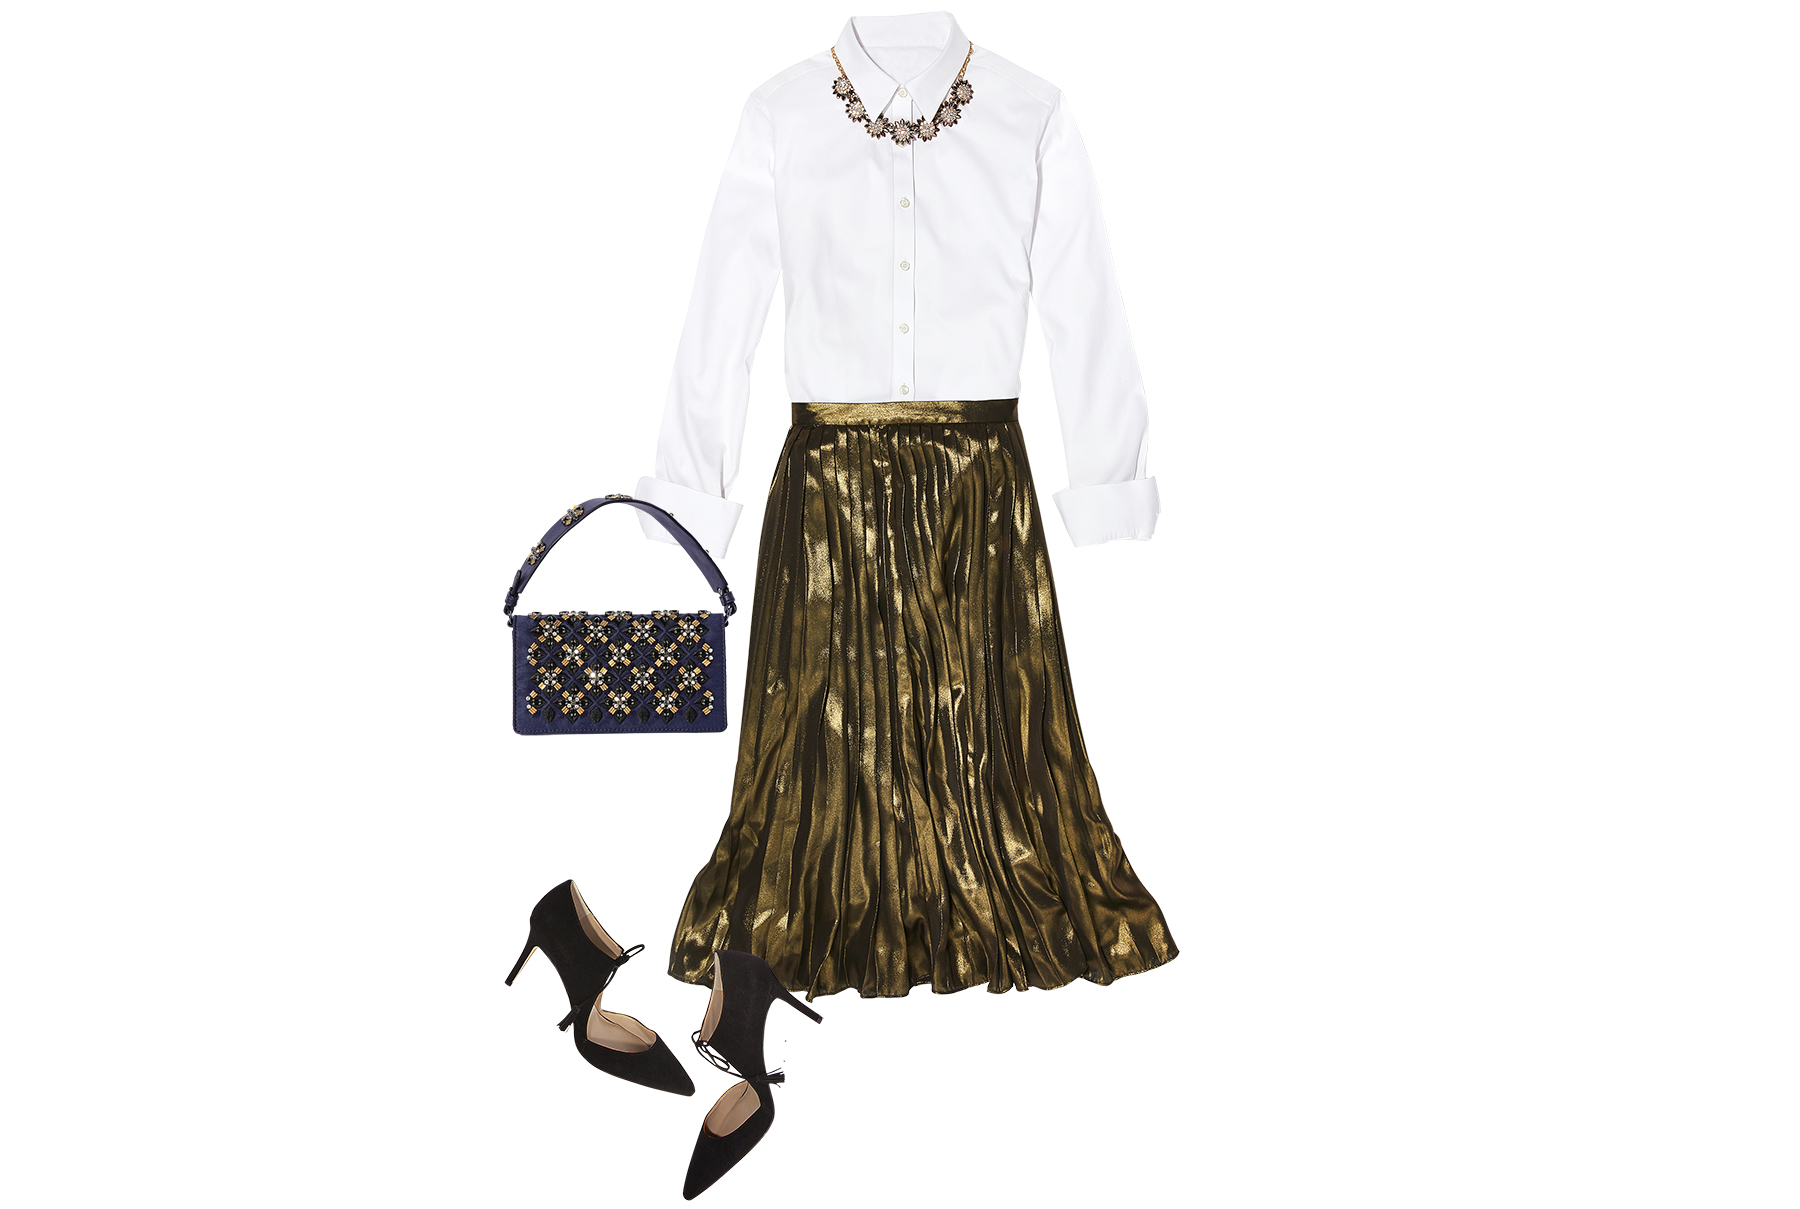 White shirt paired with metallic skirt, tassel heels, suede clutch